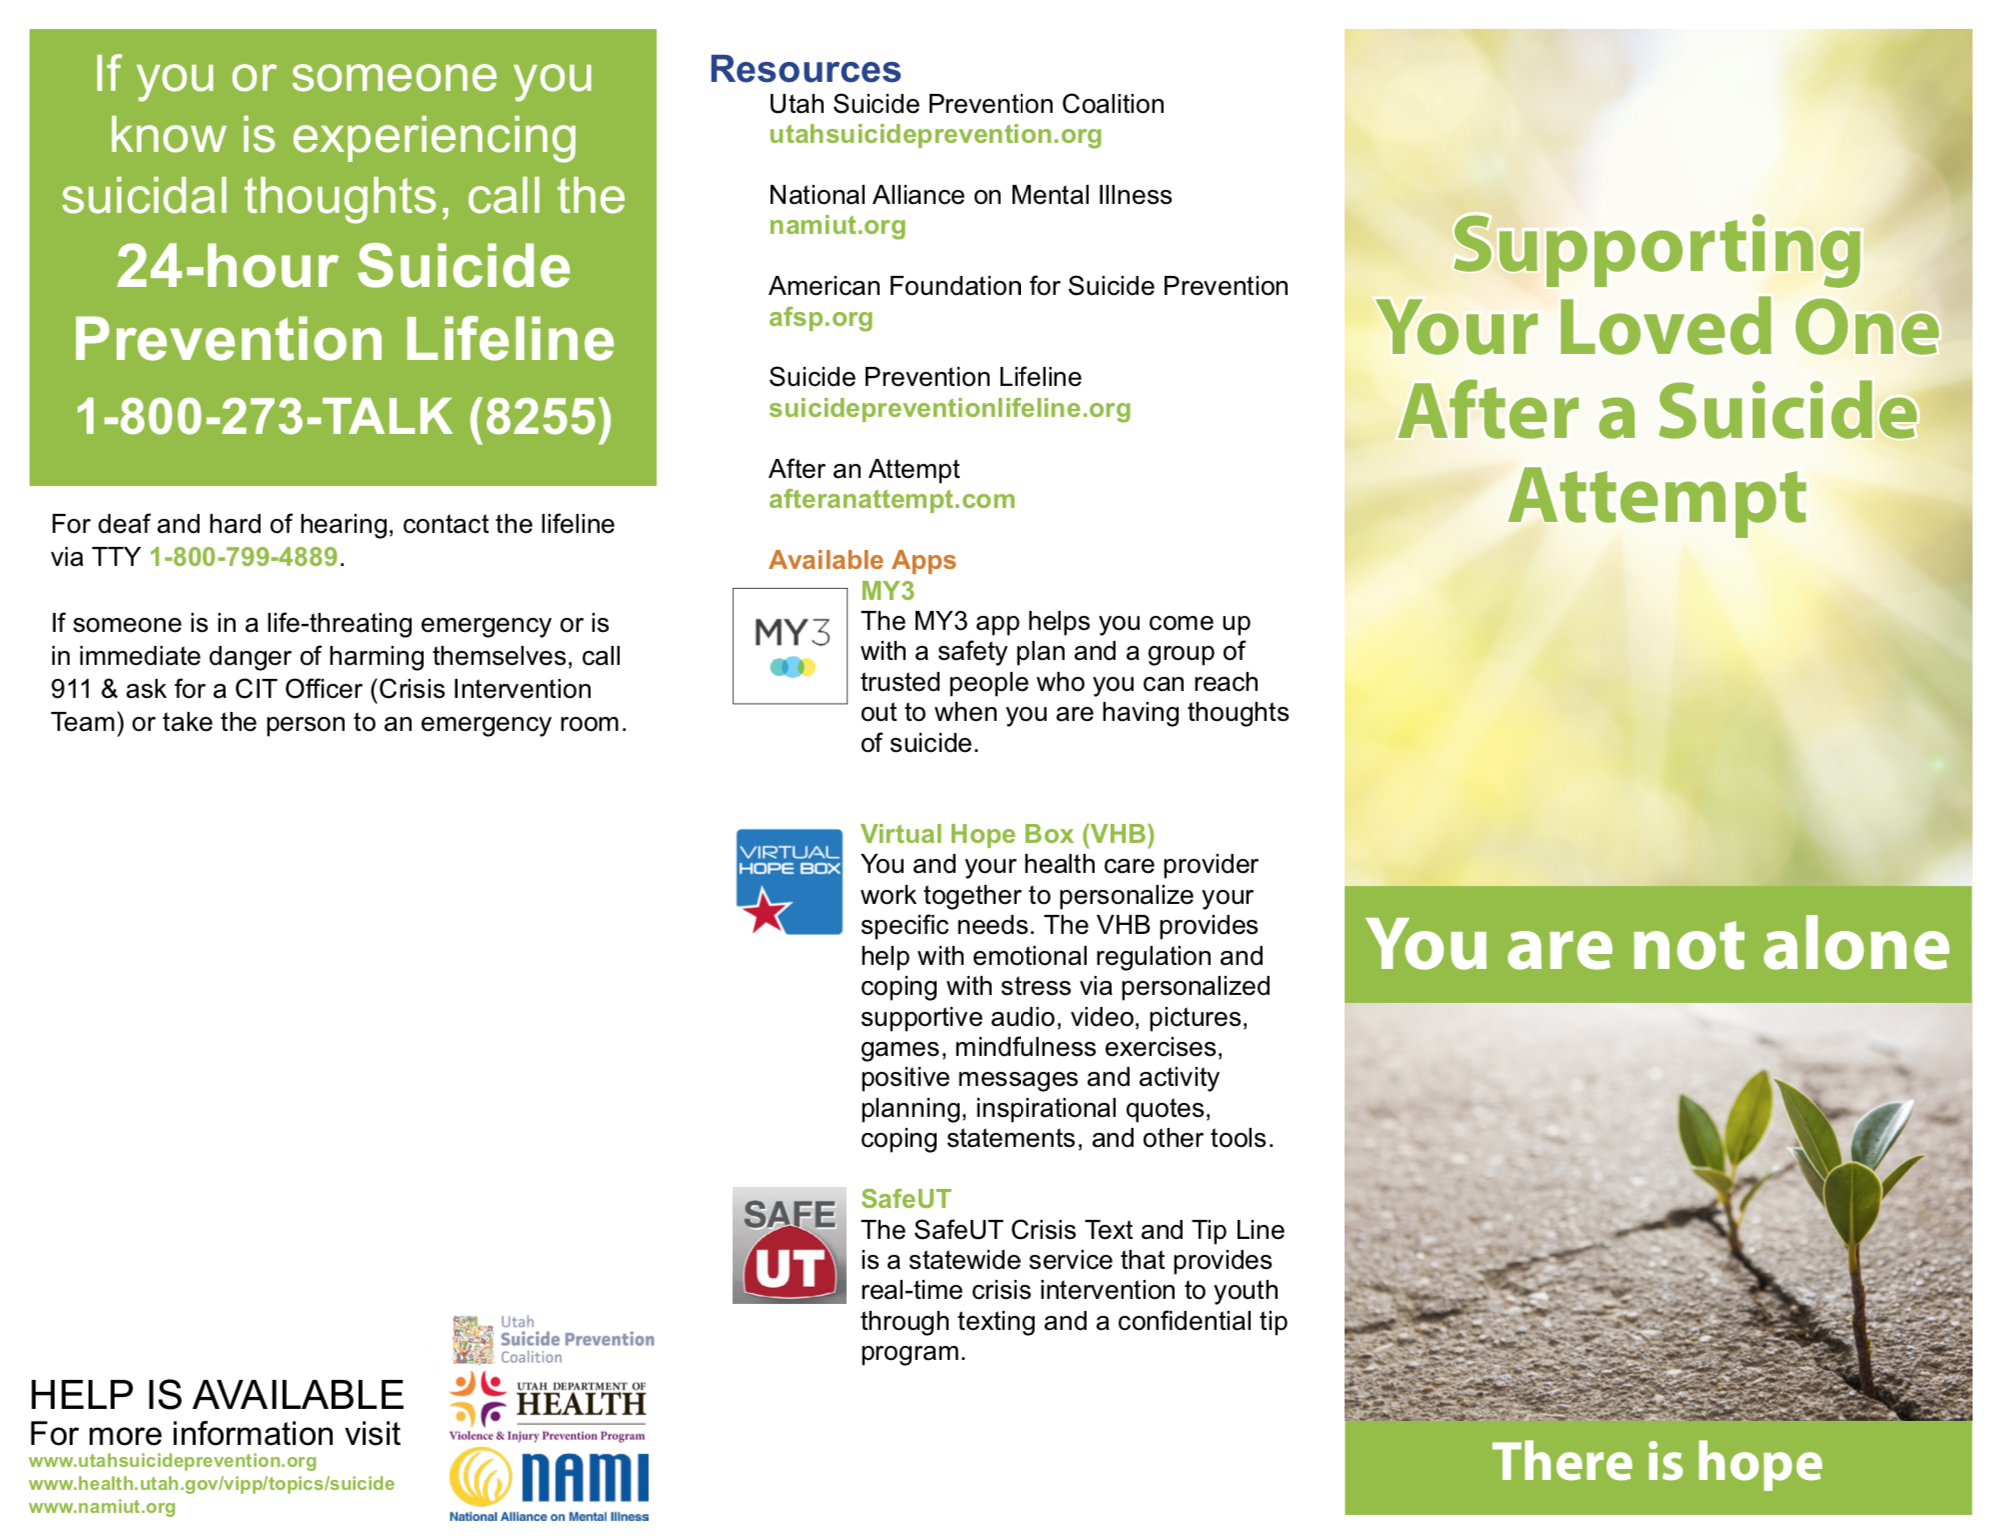 Supporting Your Loved One After a Suicide Attempt (Utah) -   Download